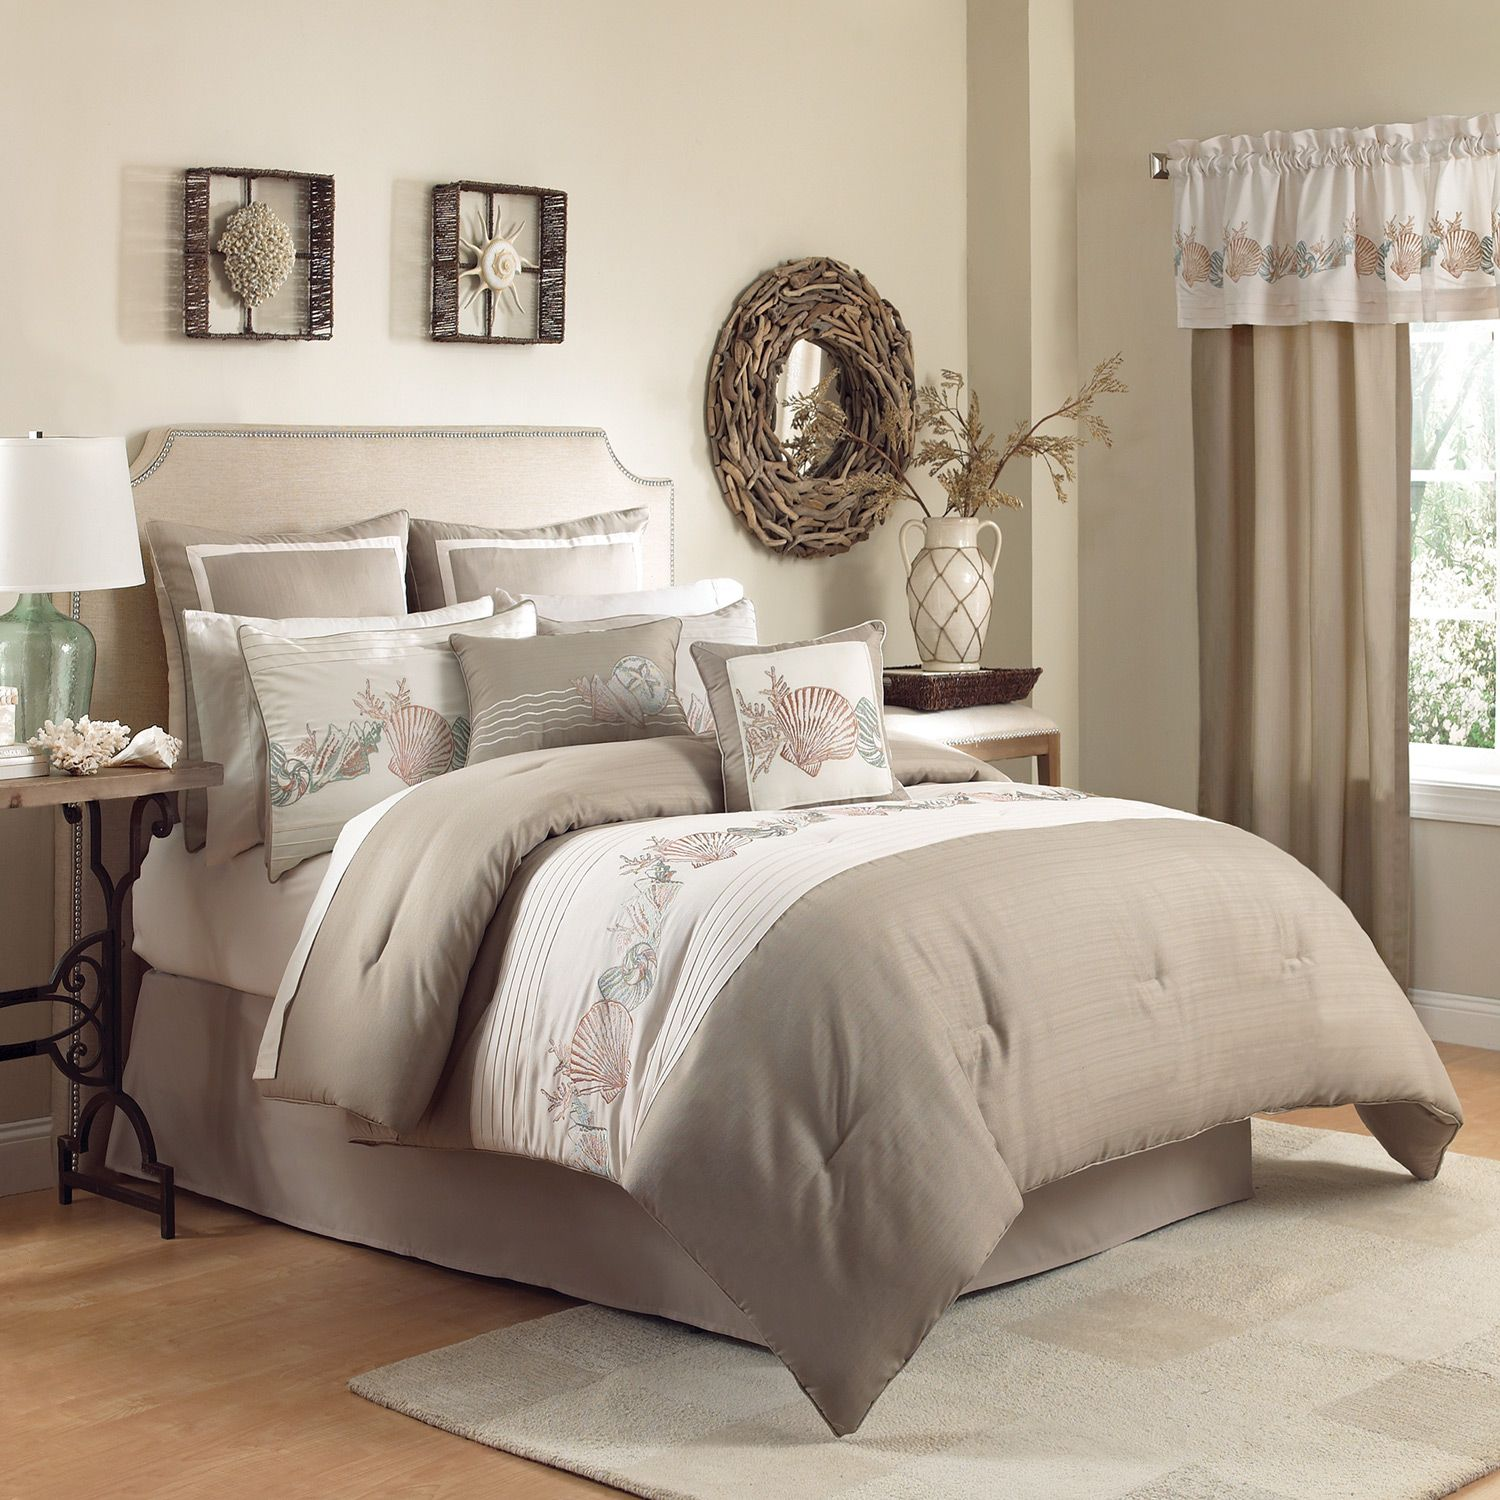 Nice california king bedding for bedroom design with california king bed frame